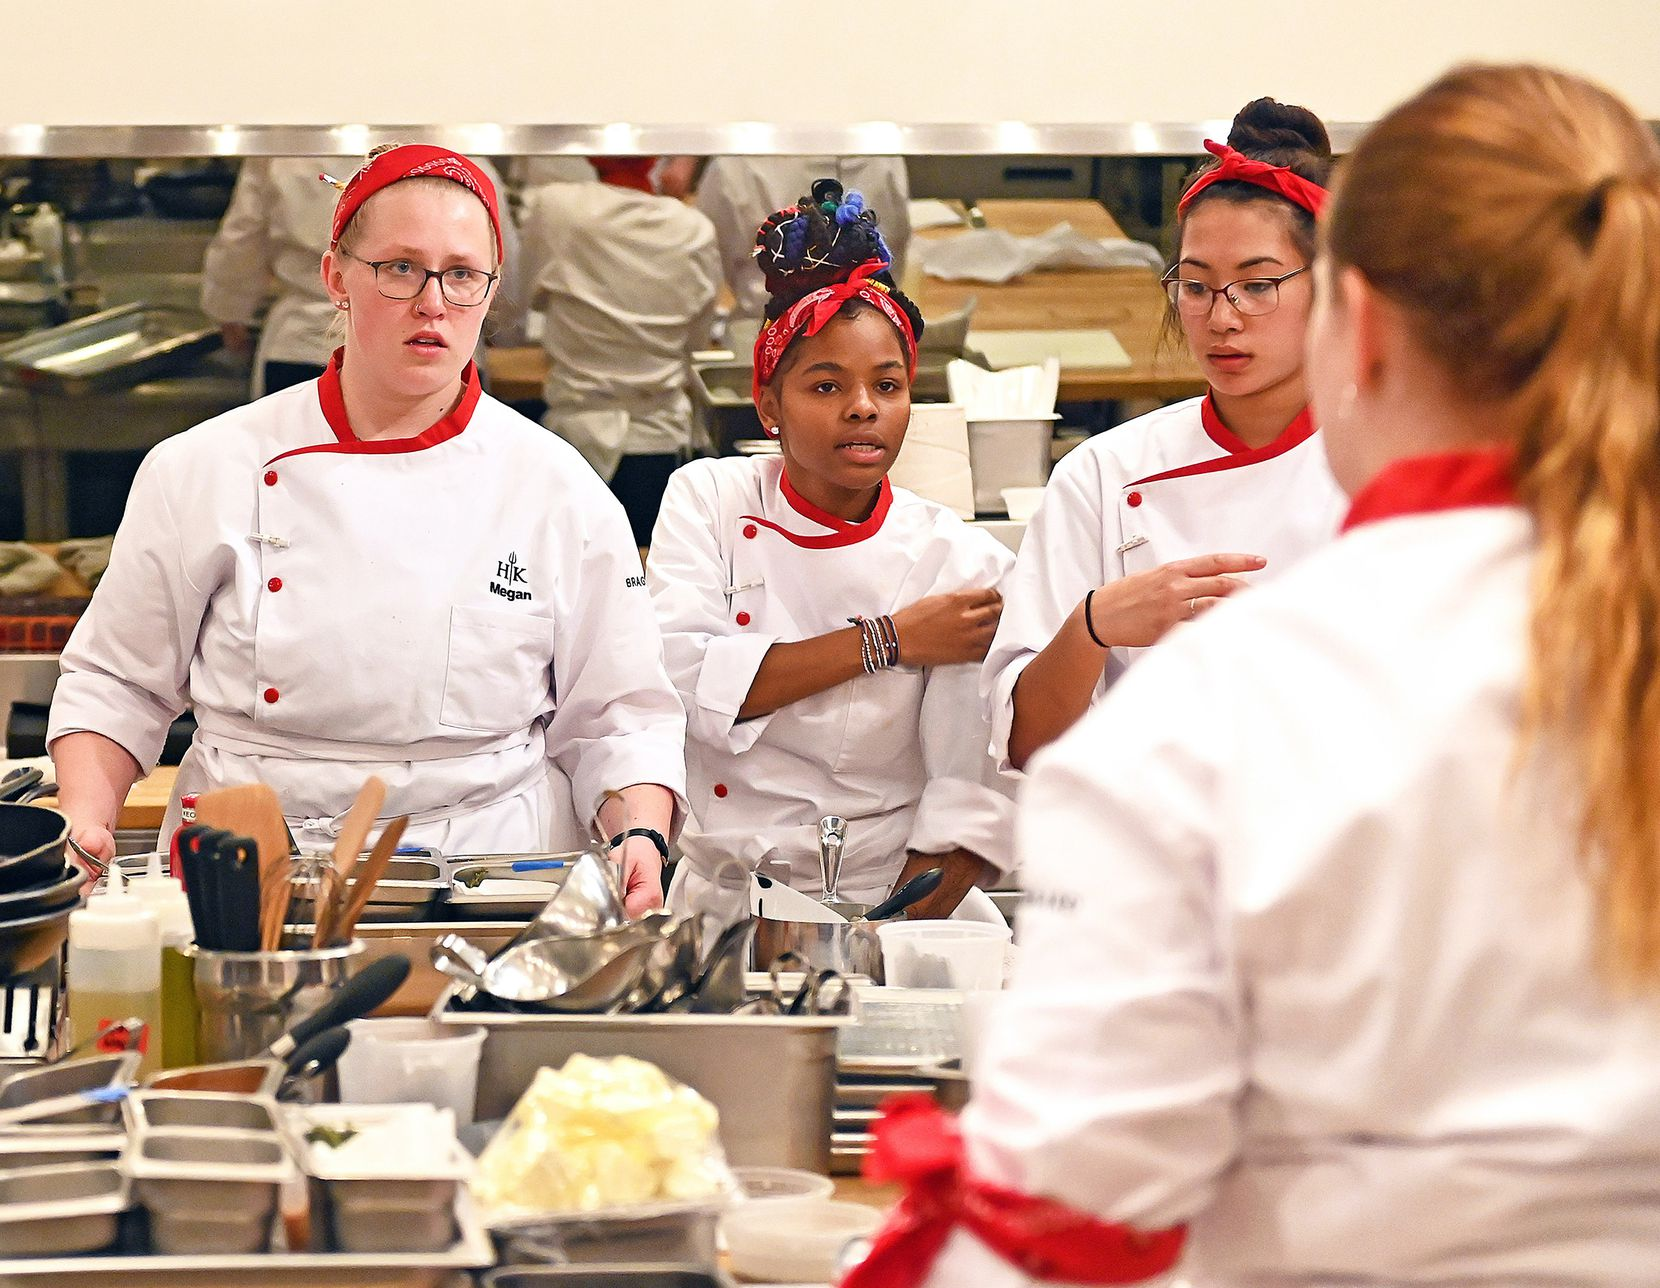 Denton chef Megan Gill, on left, competes against Keanu Hogan, center, and Brynn Gibson on 'Hell's Kitchen: Young Guns.' All of the contestants were 23 years old or younger at the time of filming.